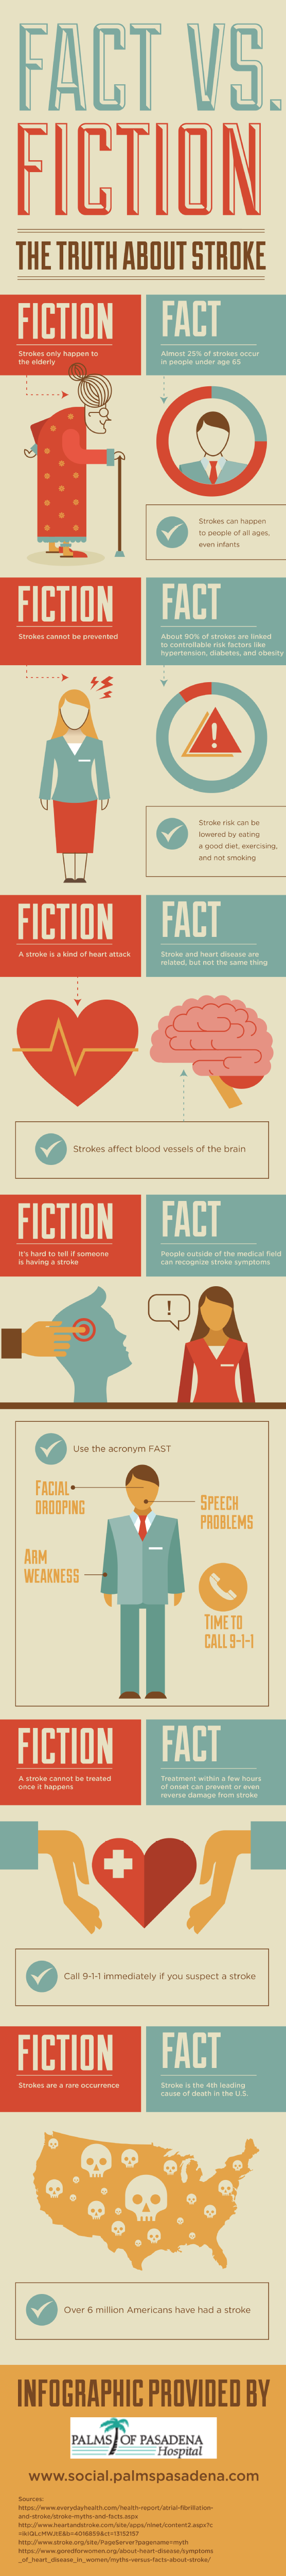 Infographic: Fact vs. Fiction: The Truth About Stroke #infographic